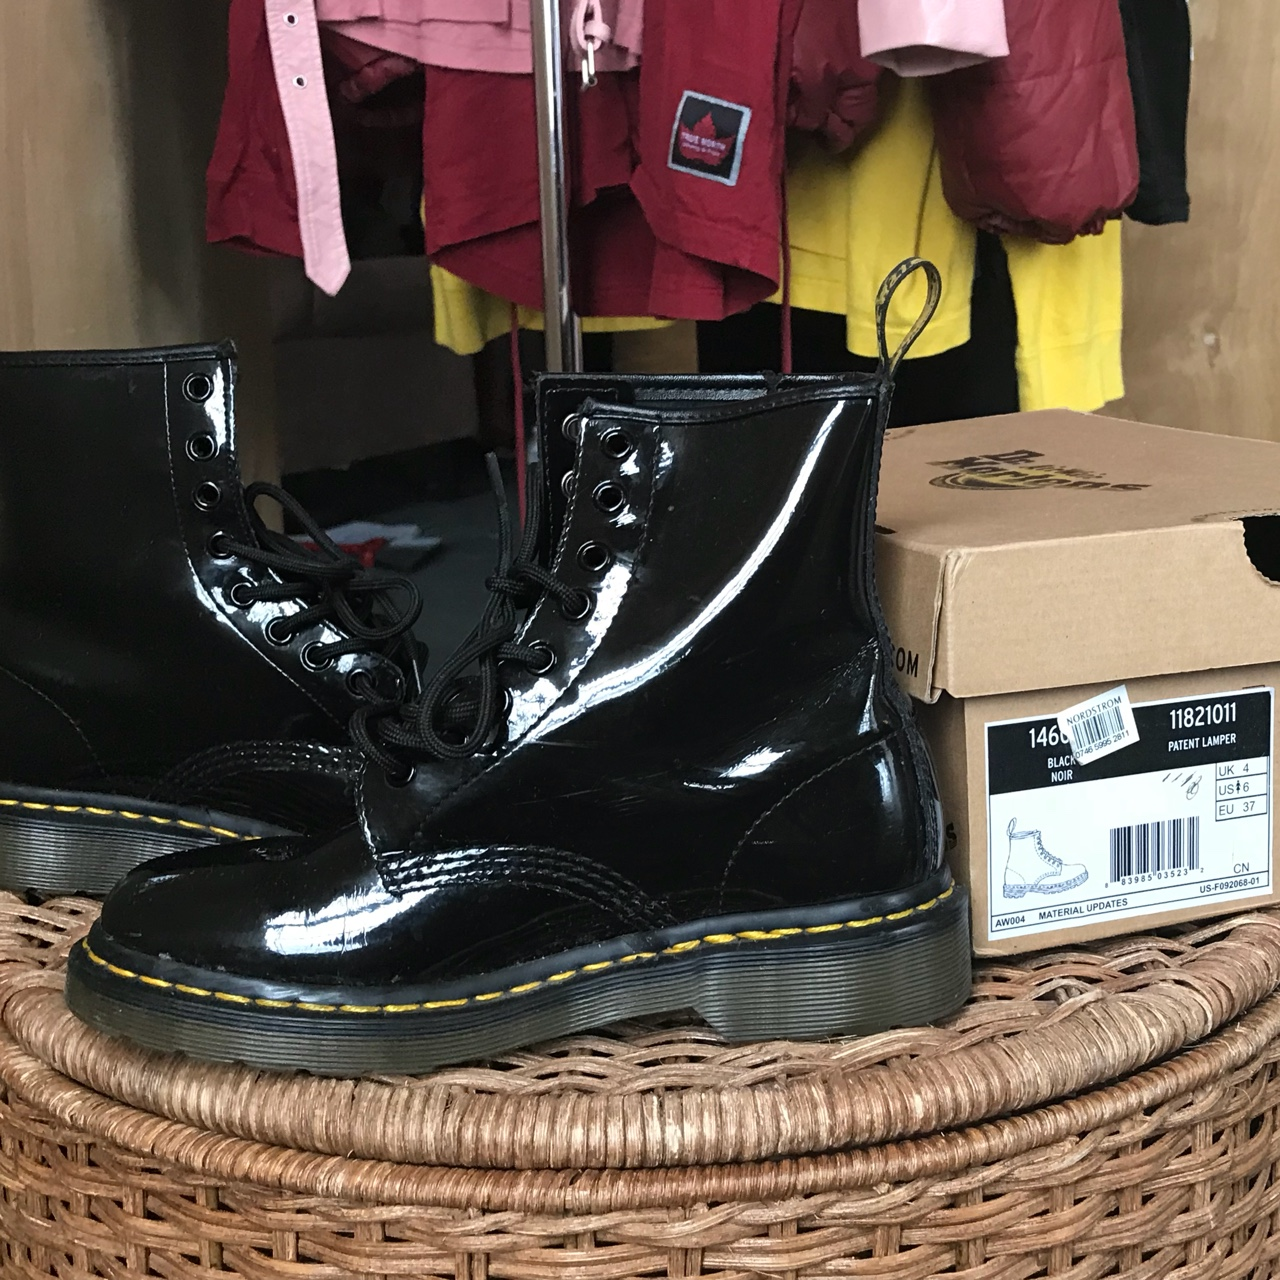 Hey! Dr Martens 1460 boot in Black